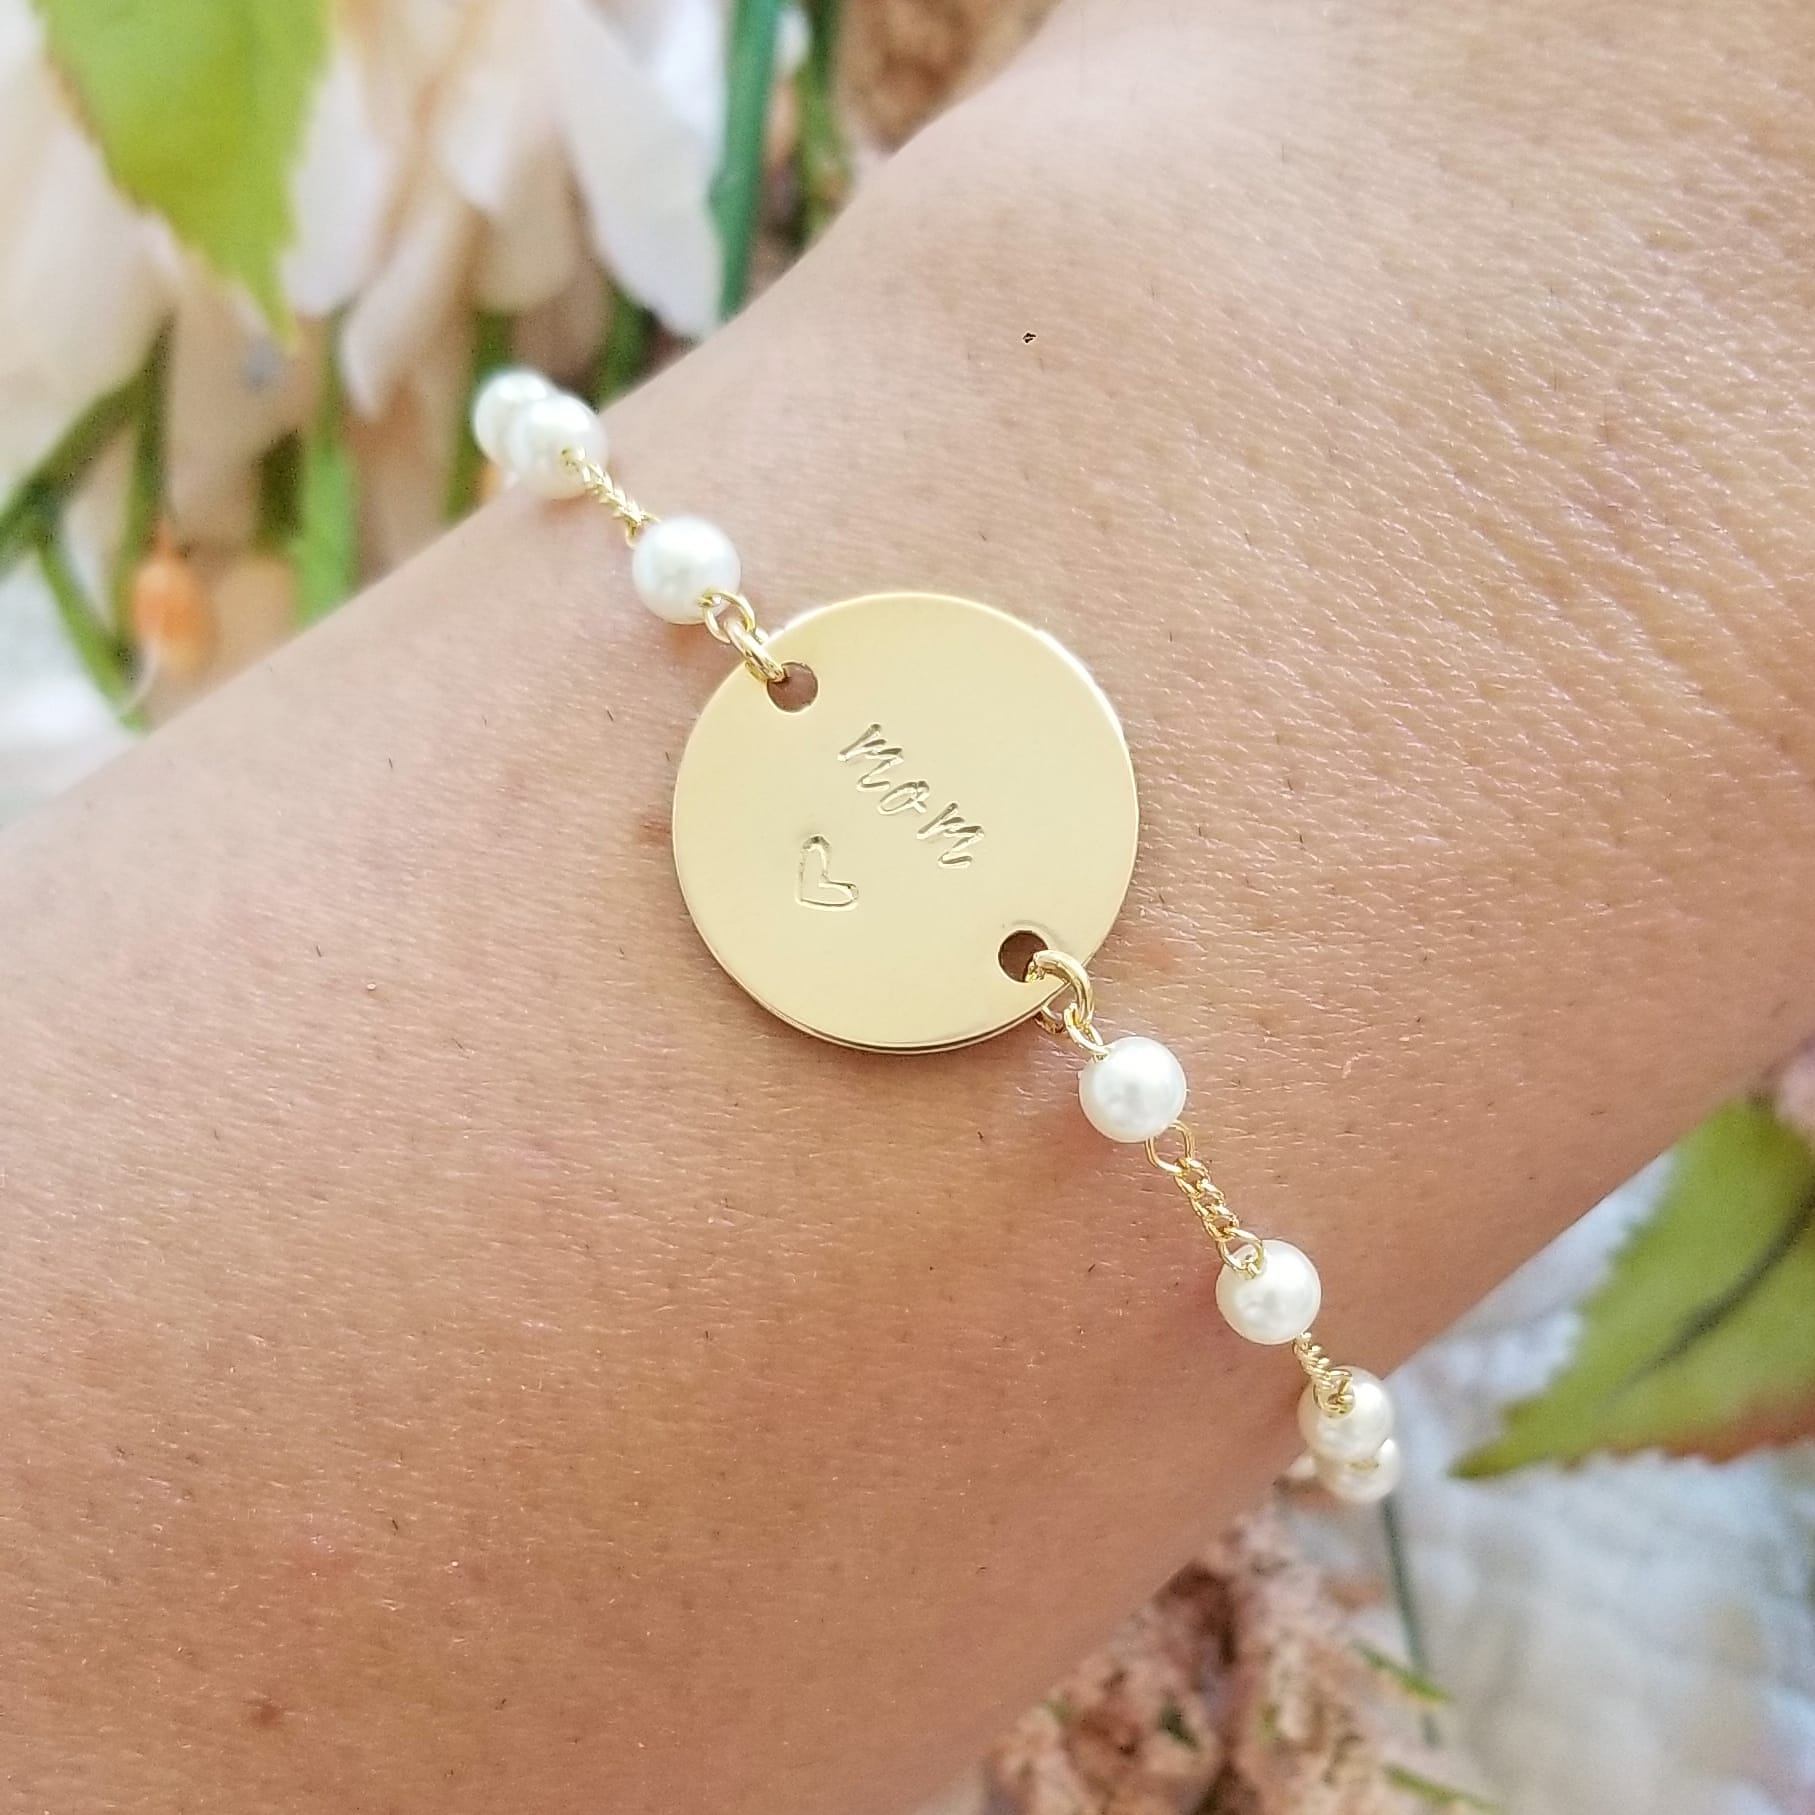 Personalized Gold Coin Chain Bracelet